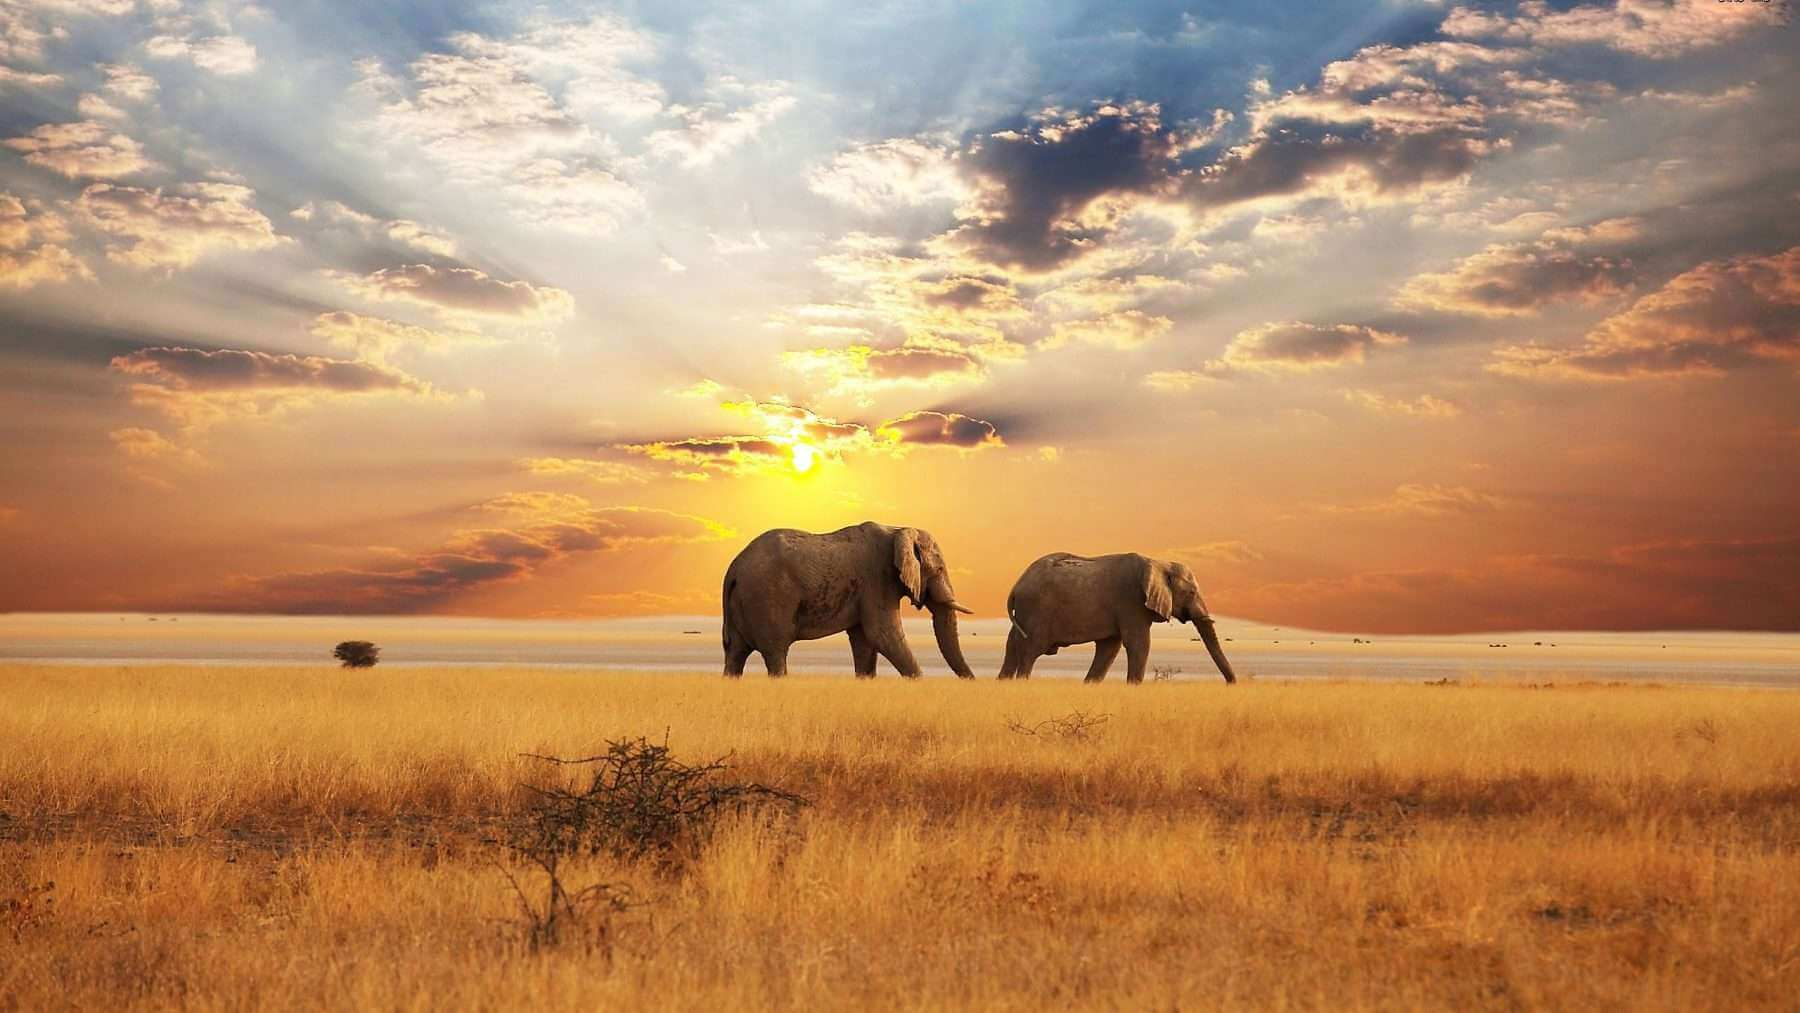 Travel guide blog to Africa